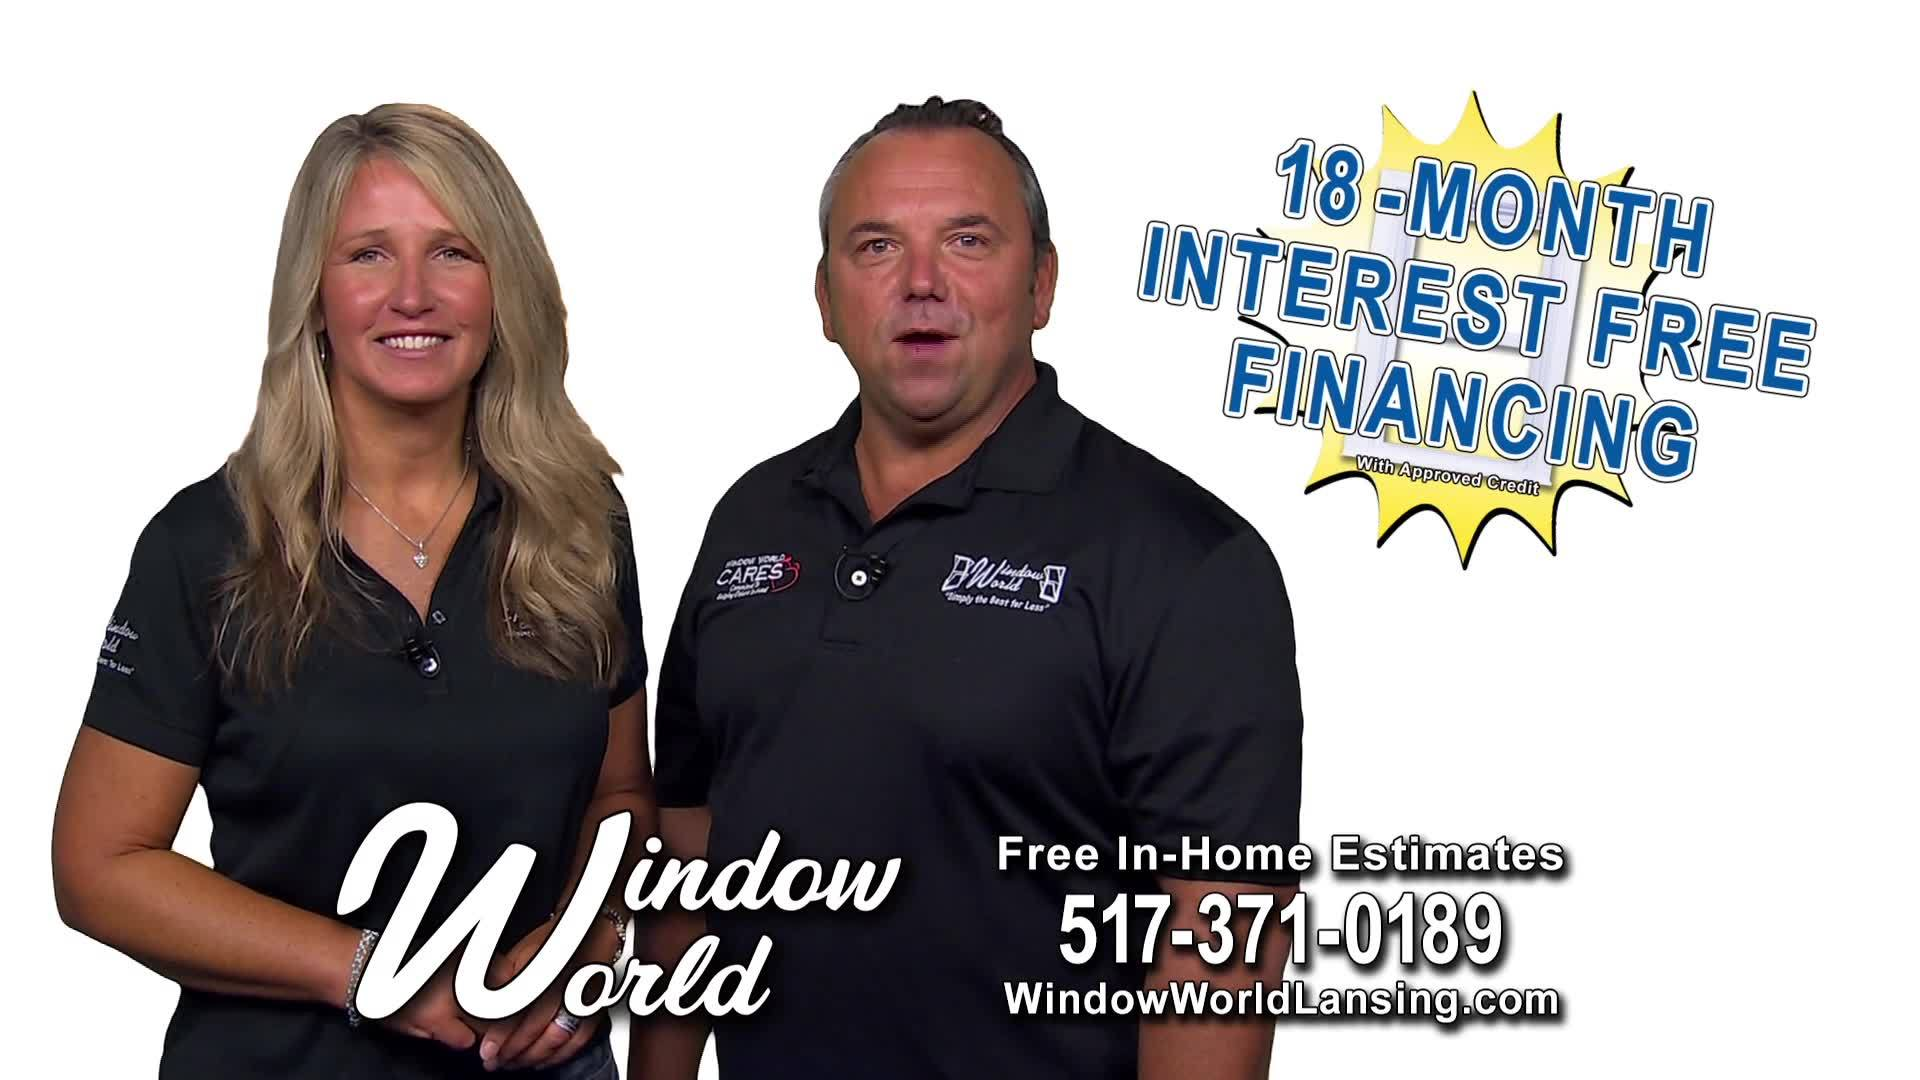 Window World | Interest Free Financing